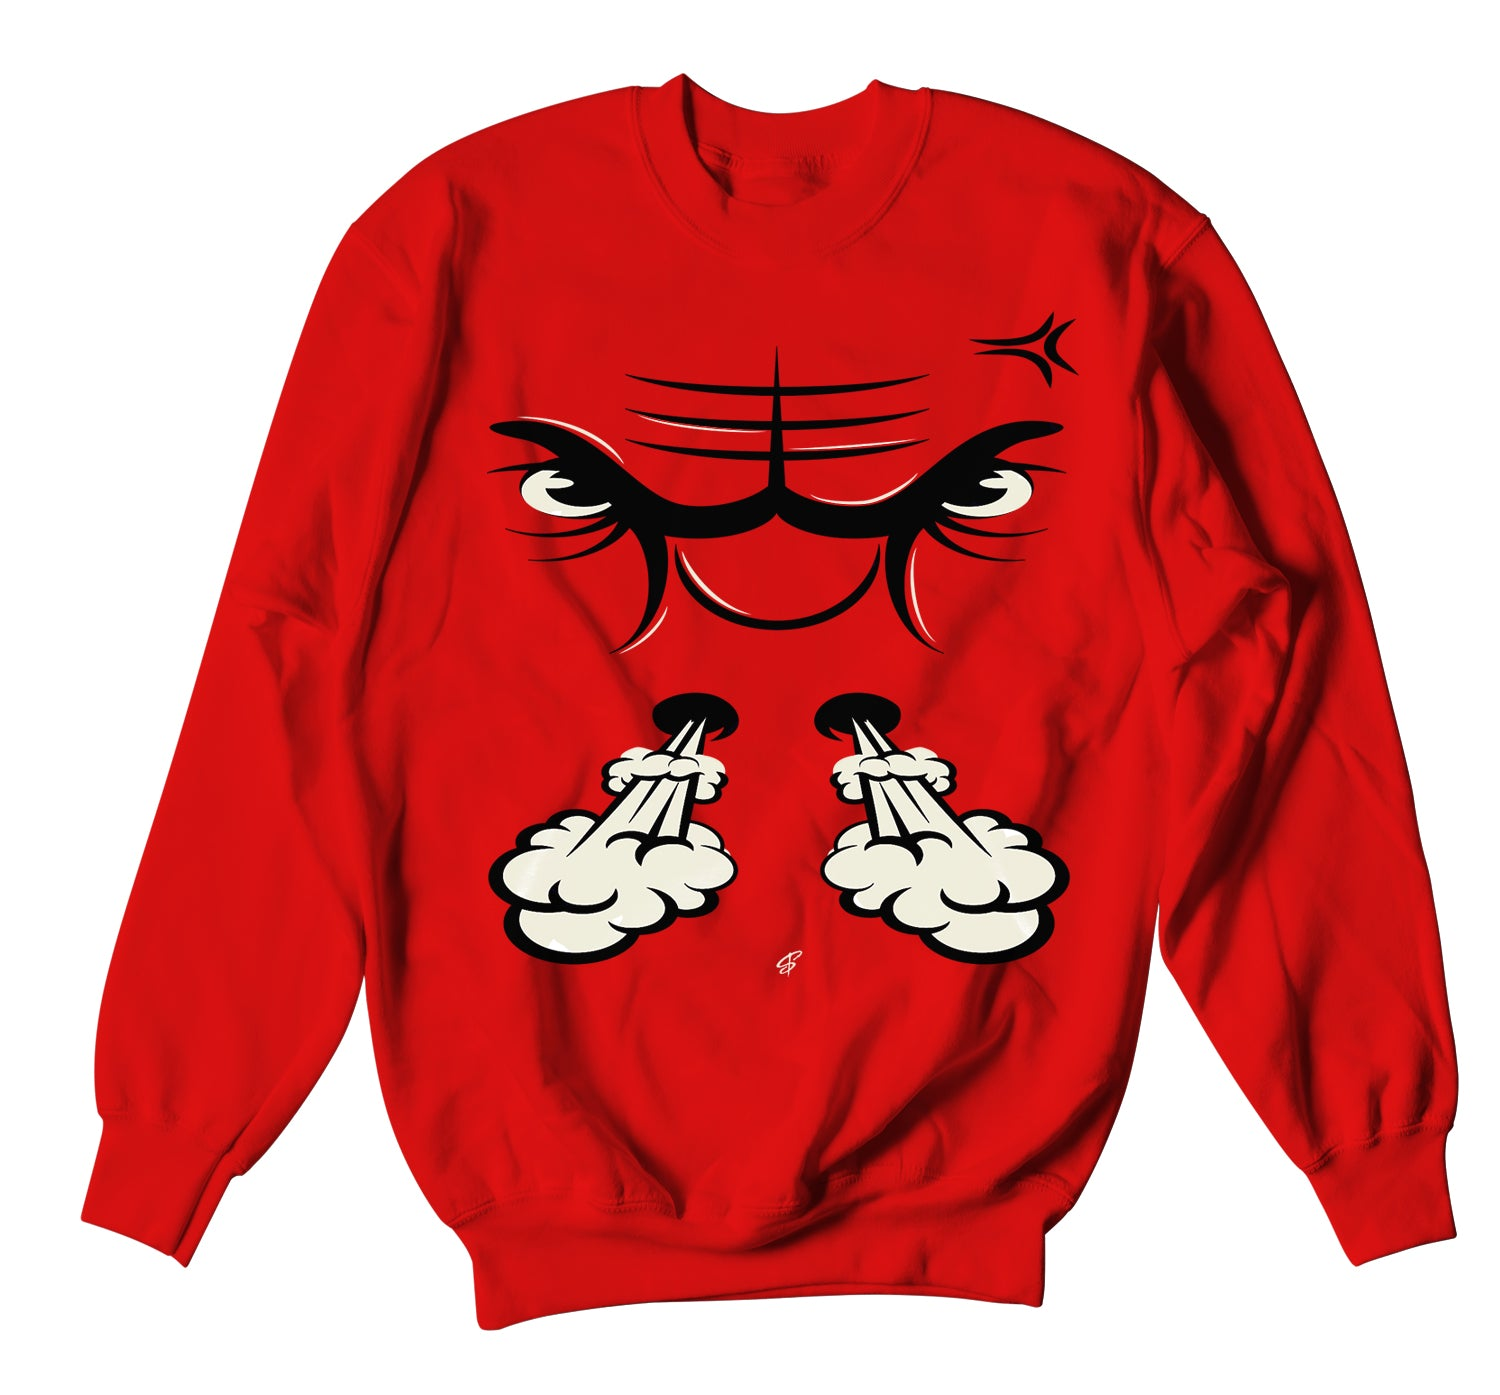 Jordan 3 Red Cement Sweater - Raging Face - Red